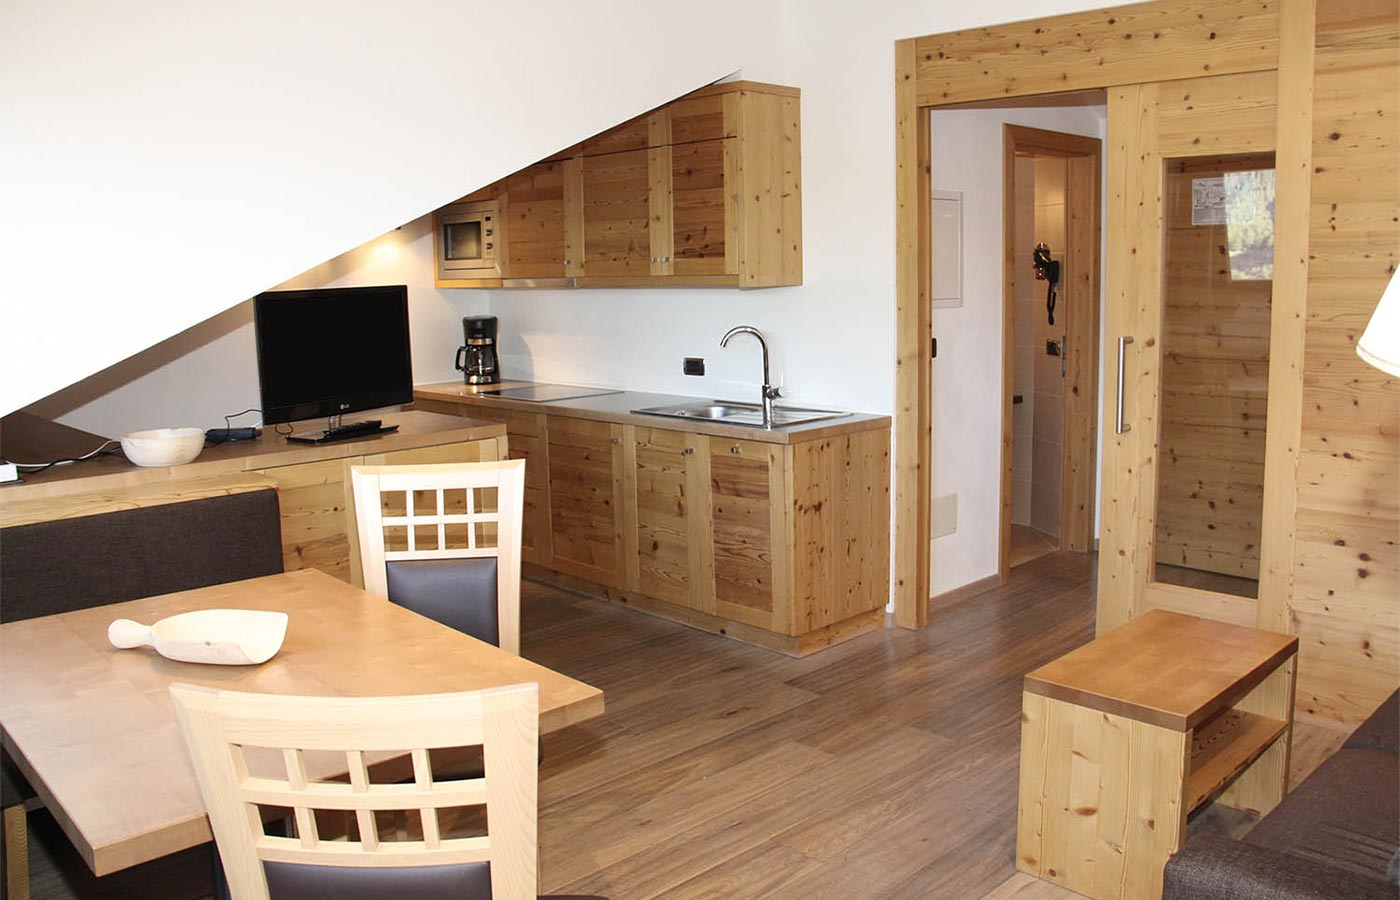 Details of the kitchen of the Apartment in Selva Val Gardena